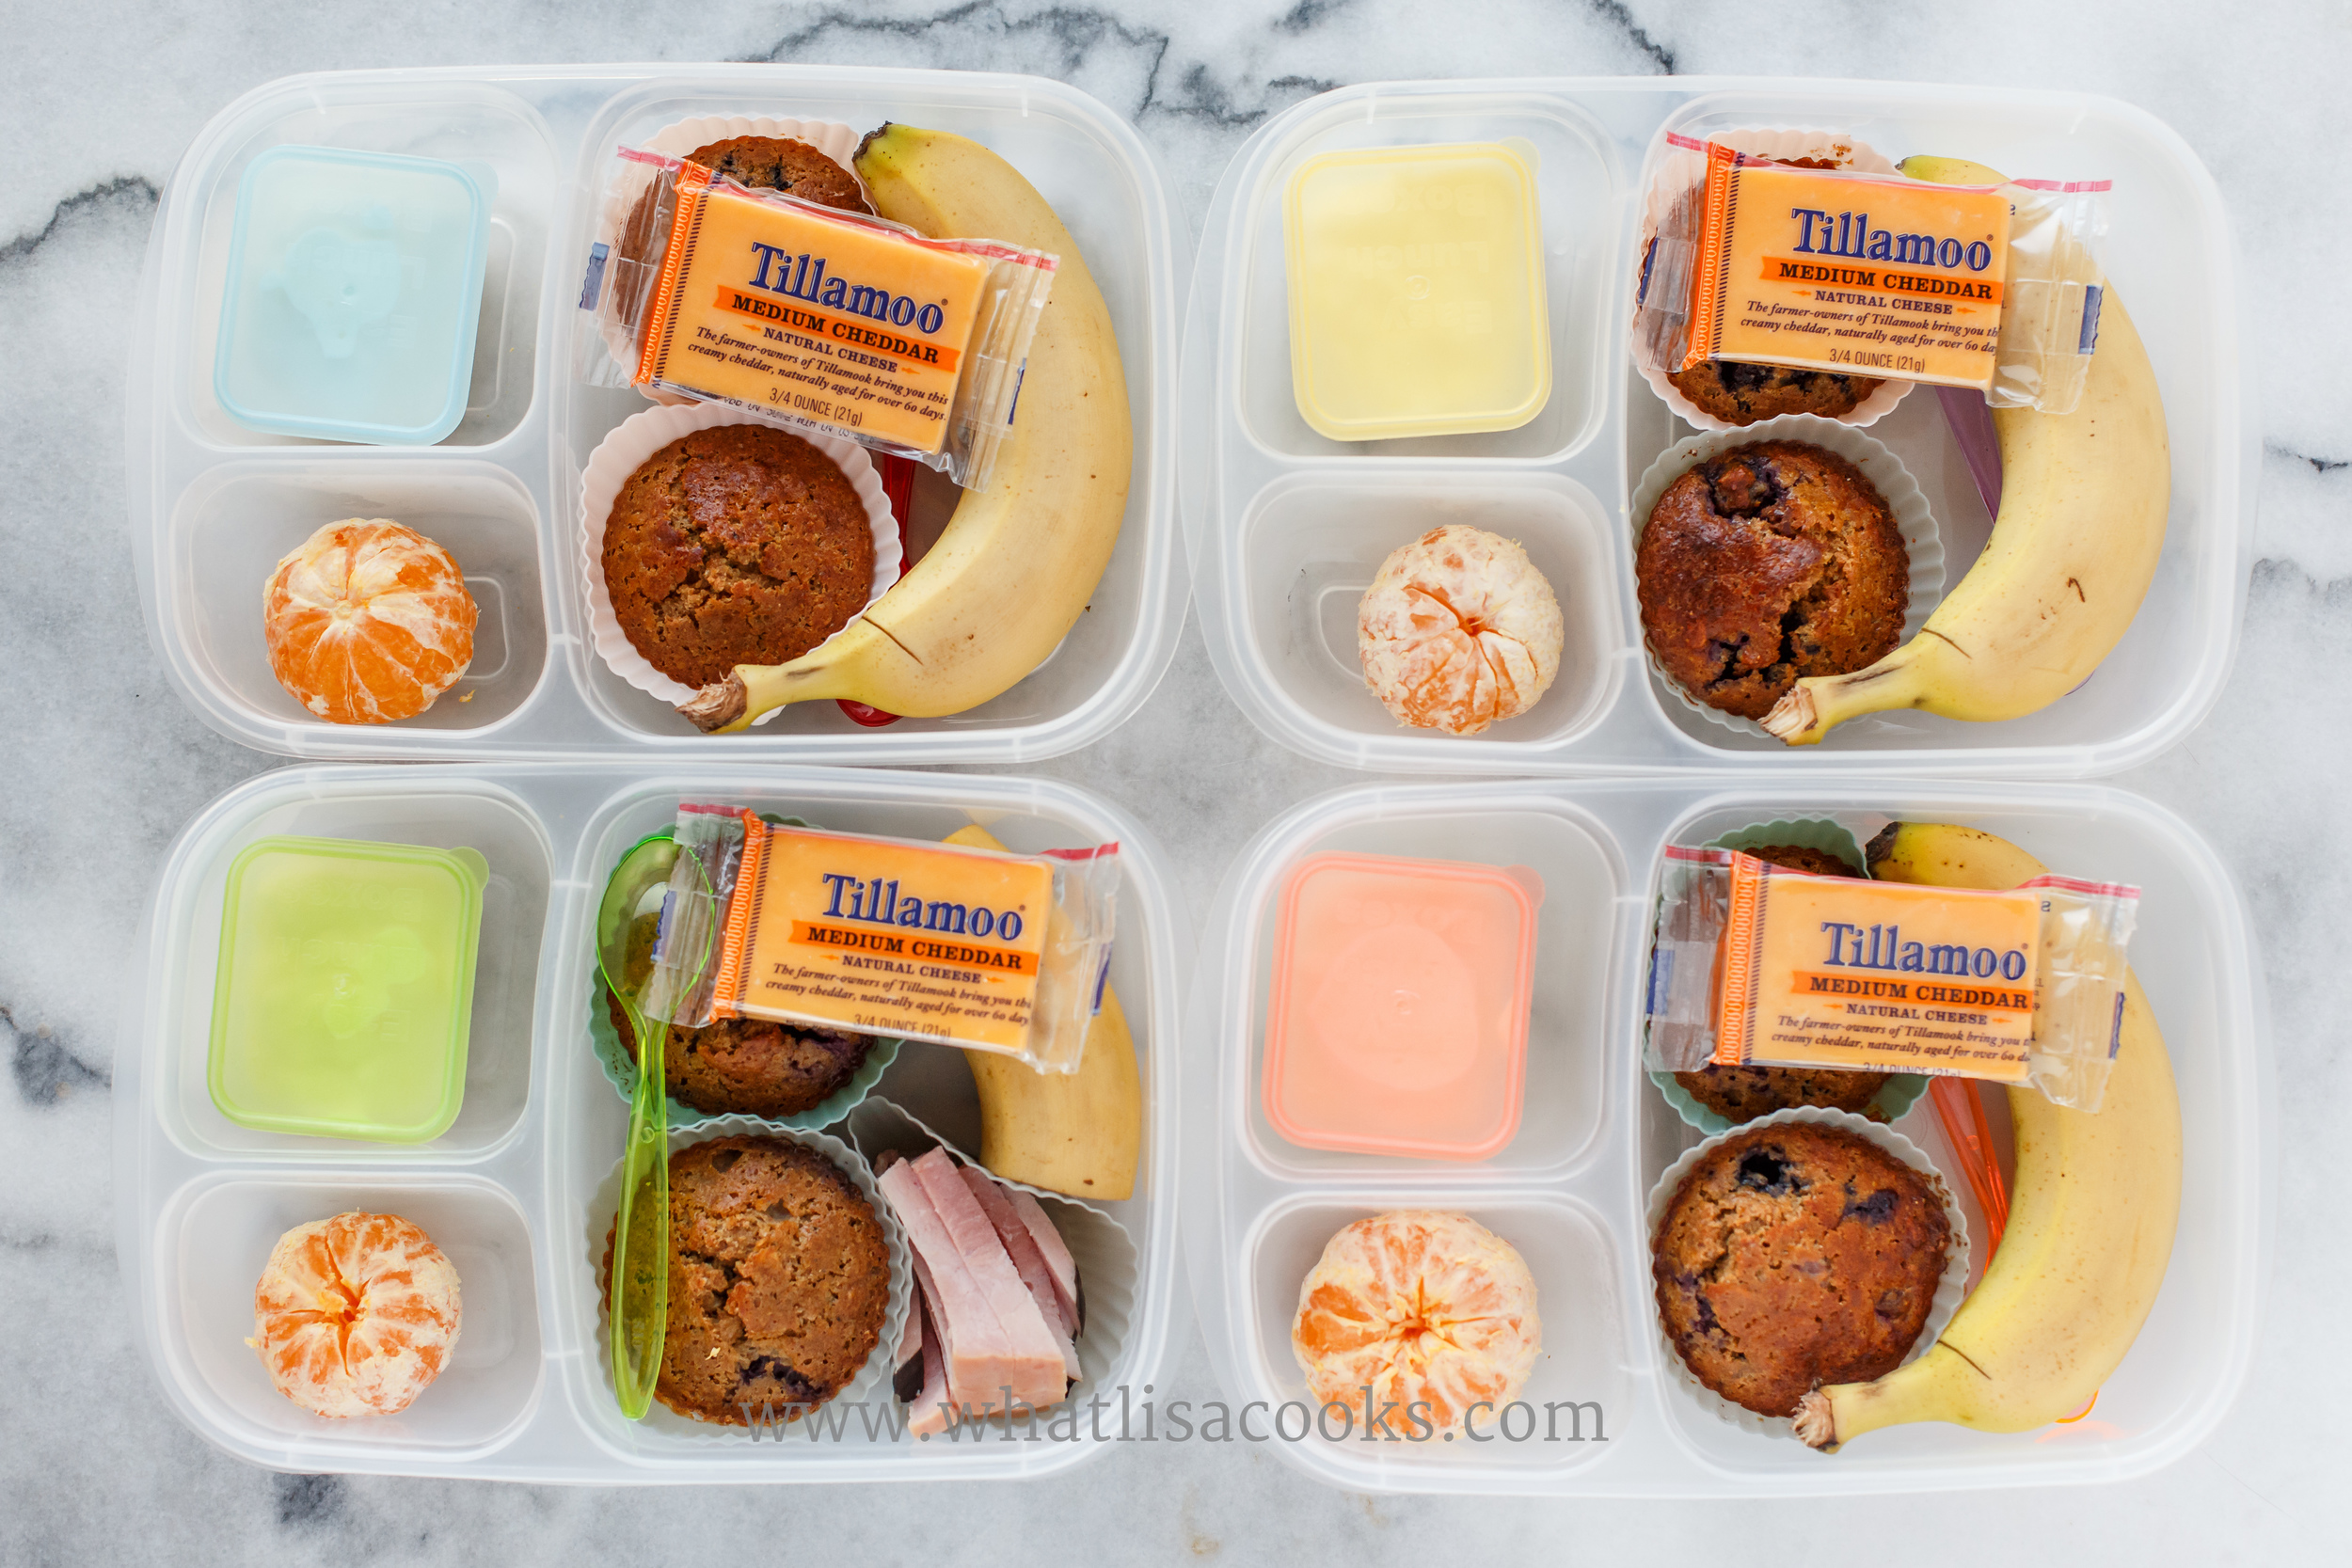 Breakfast for lunch. Whole wheat blueberry muffins from the freezer, banana, orange, yogurt, and one has some ham.